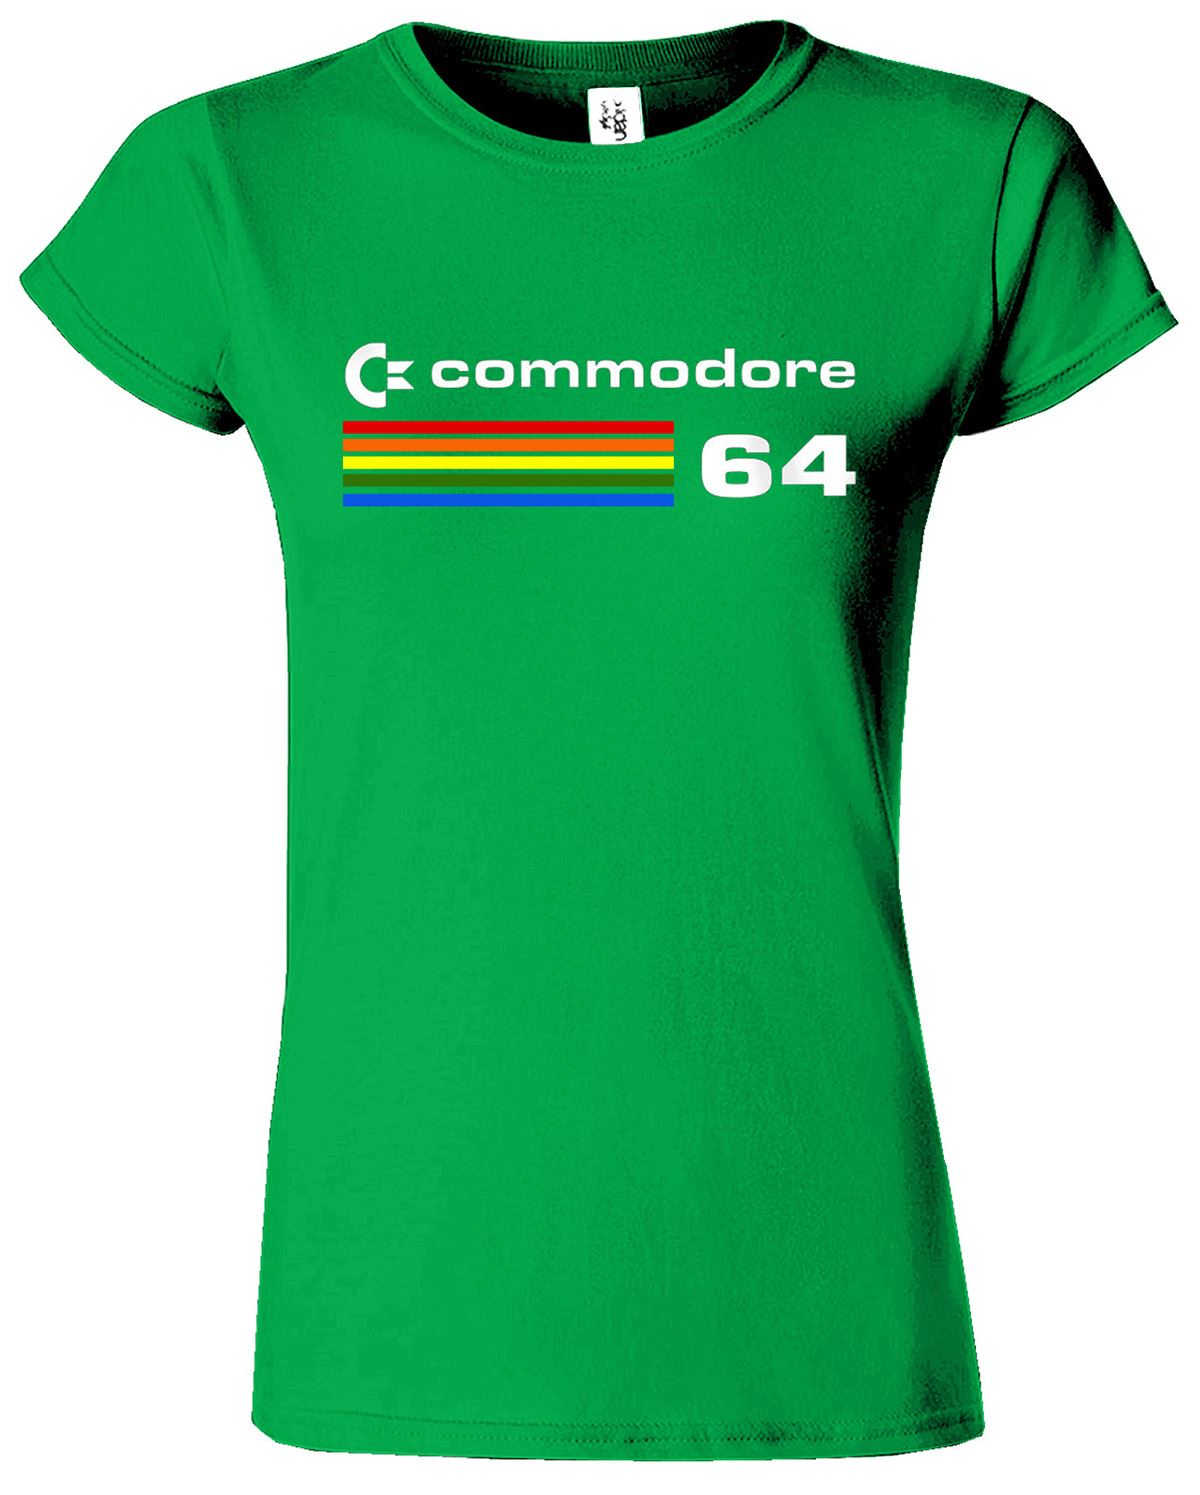 new look commodore 64 t shirt woman girls lady xxl l m s classic top tee shirt ebay. Black Bedroom Furniture Sets. Home Design Ideas